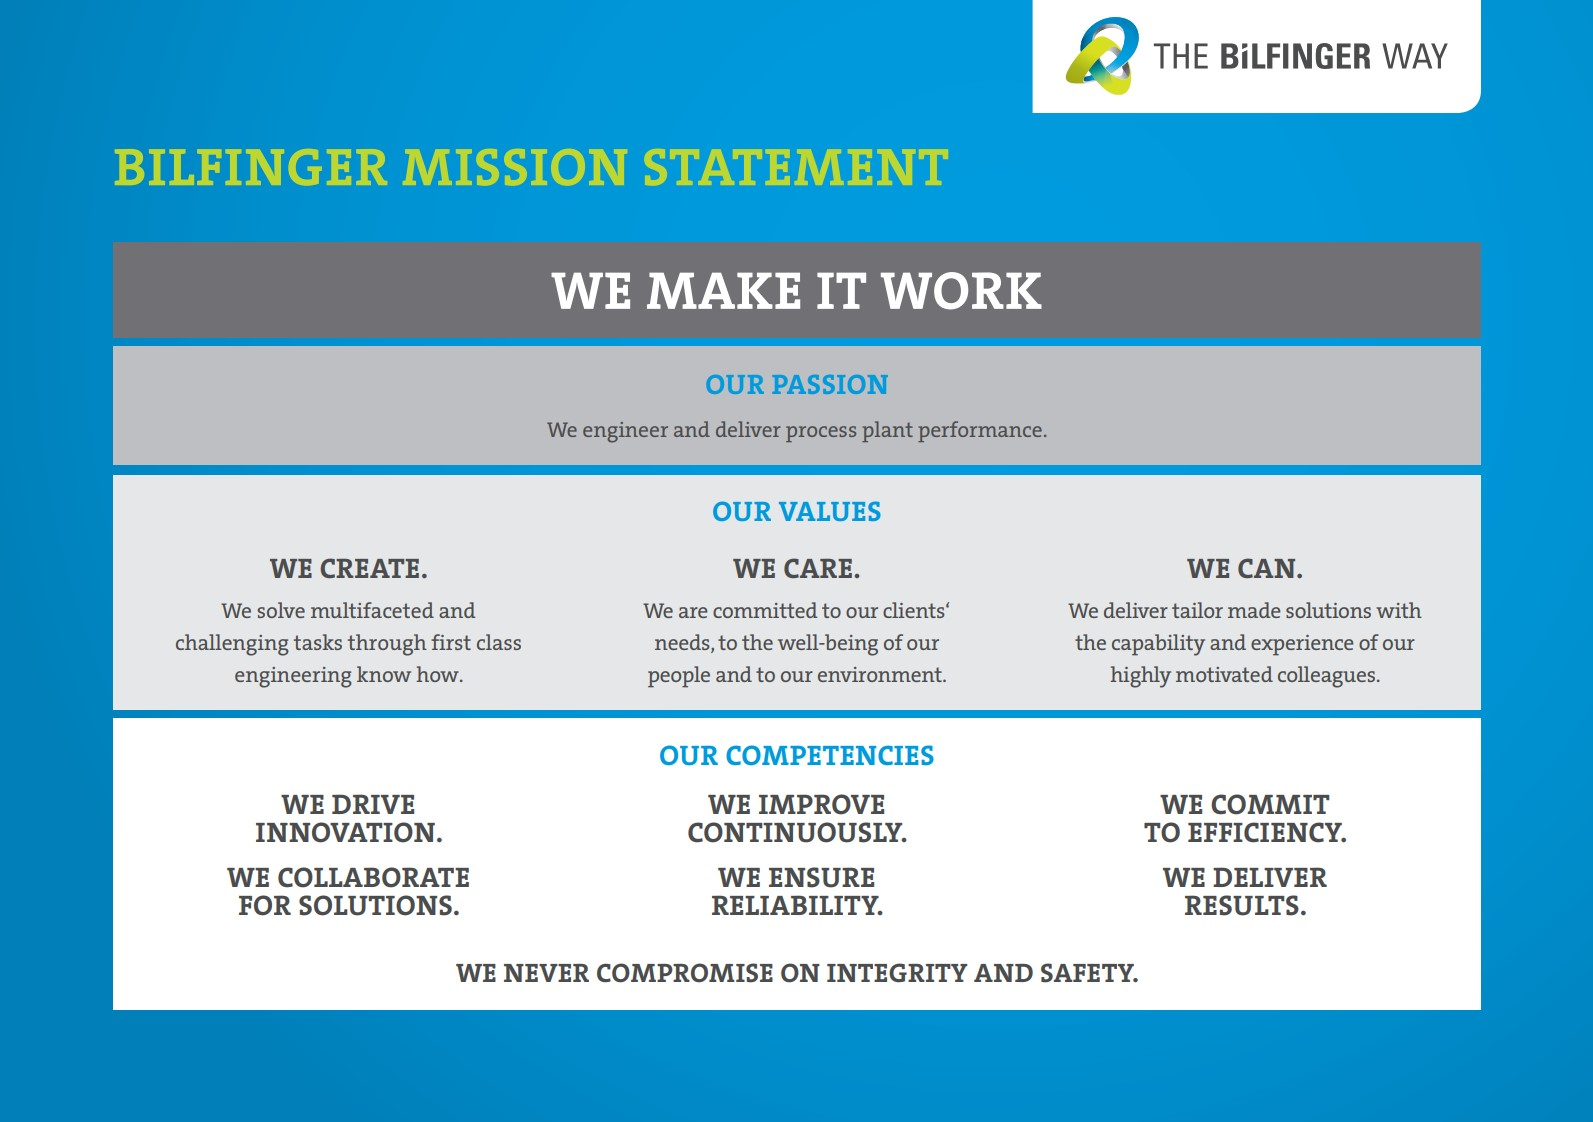 Bilfinger Mission Statement: We create. We care. We can.